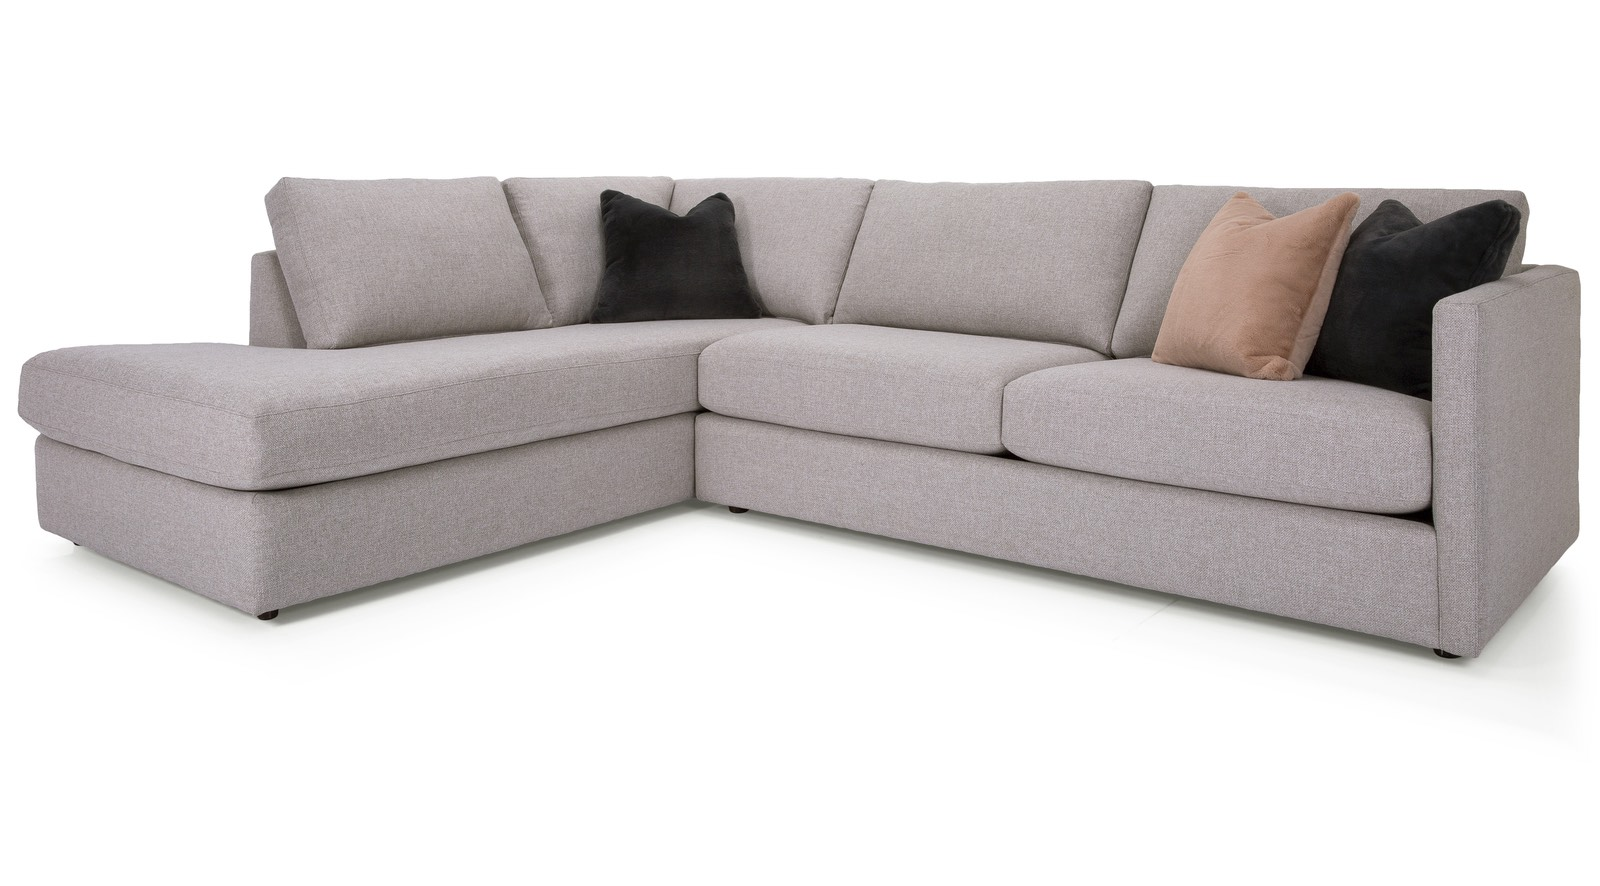 A modern L shaped sectional sofa with two black pillows